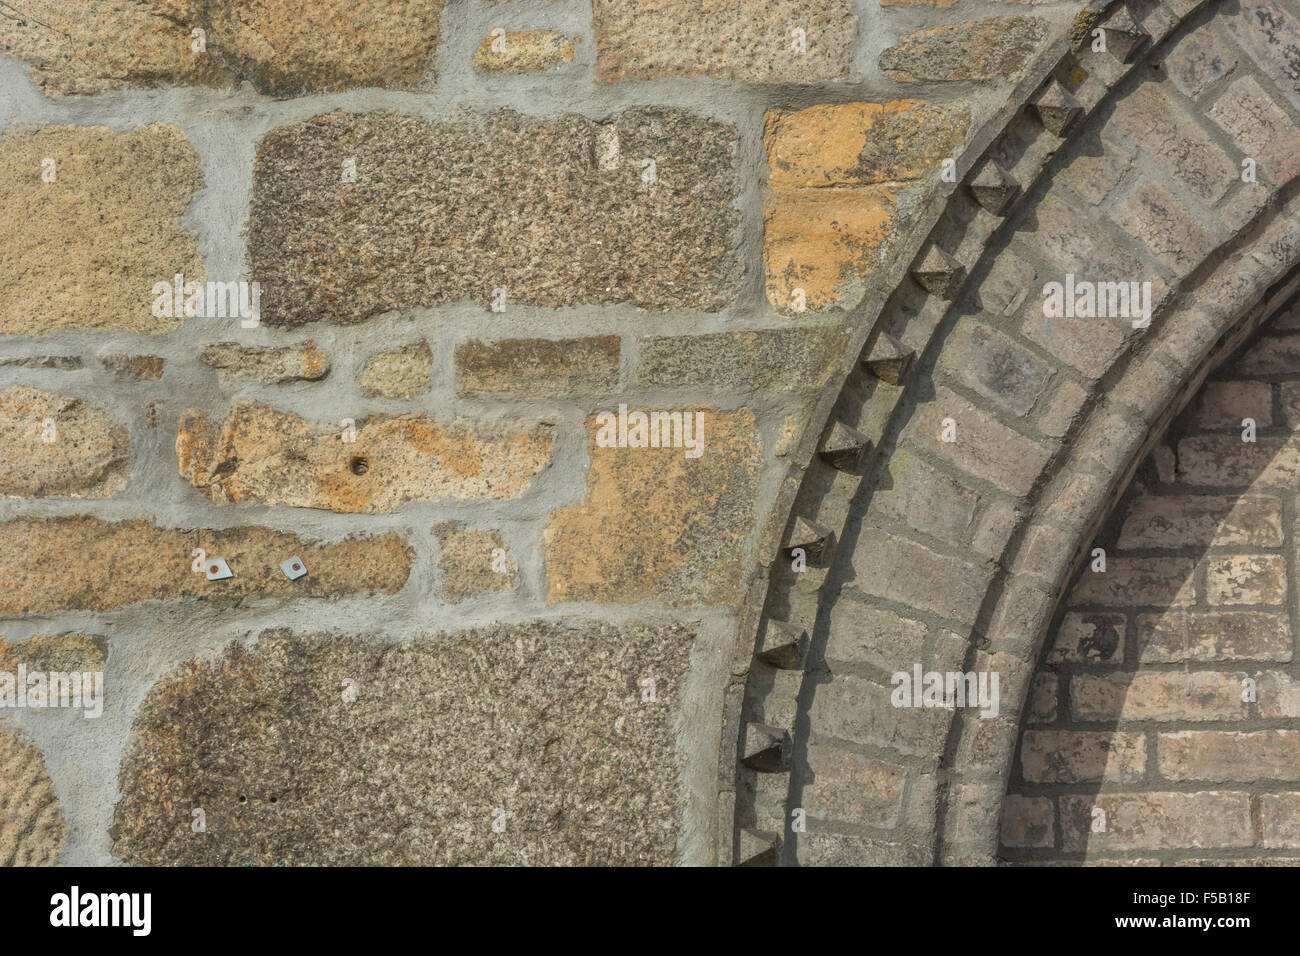 Section of brickwork and stone arch detail on a house in